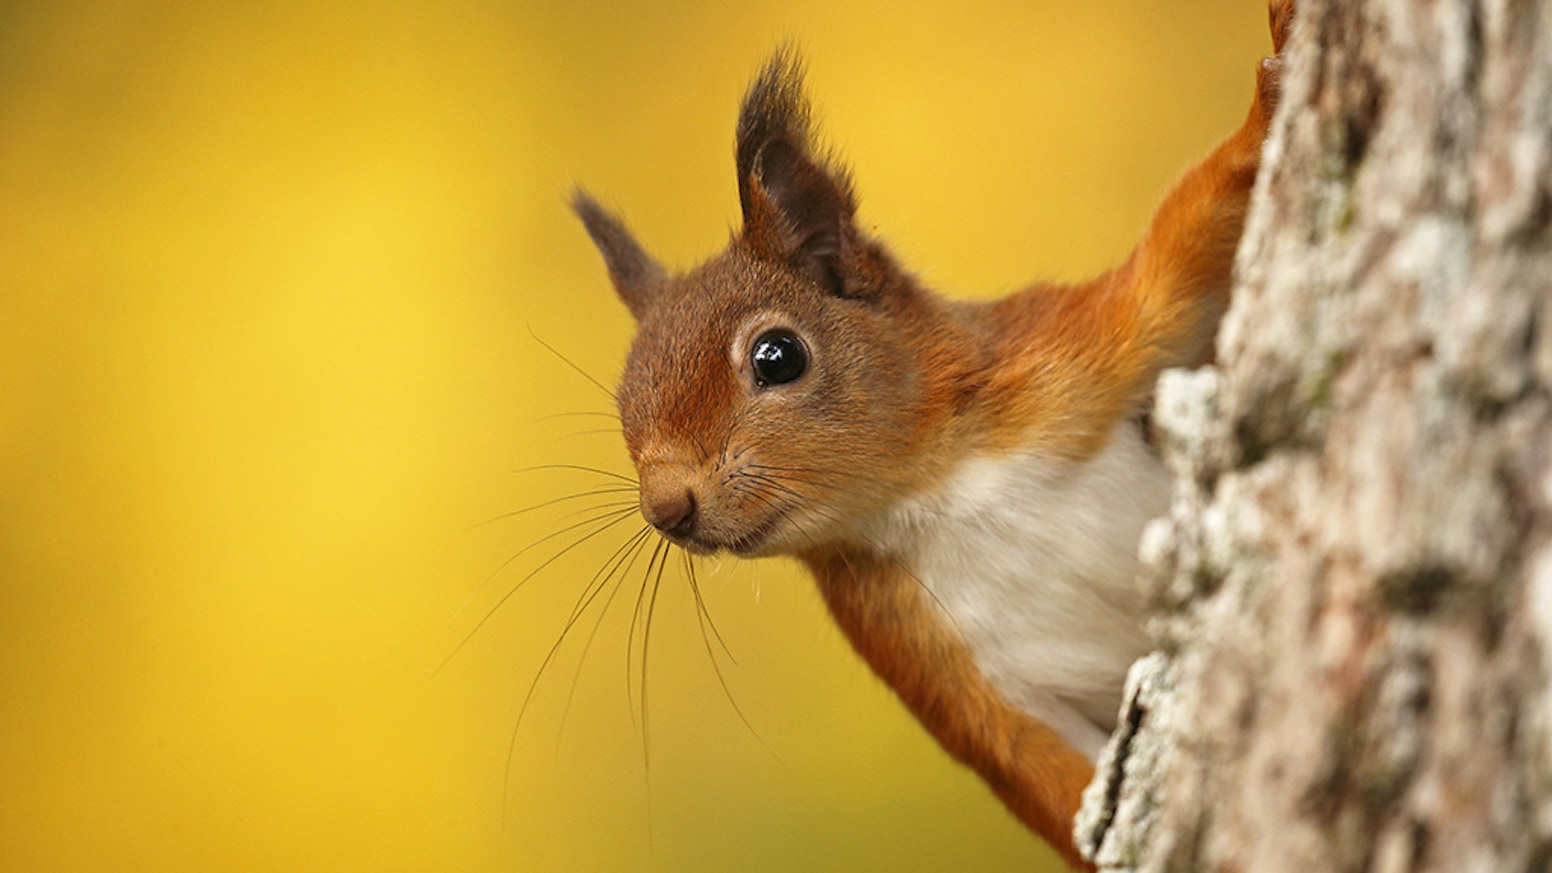 Stunning book showcasing the amazing images of red squirrels and their precious forest home by wildlife photographer Neil McIntyre